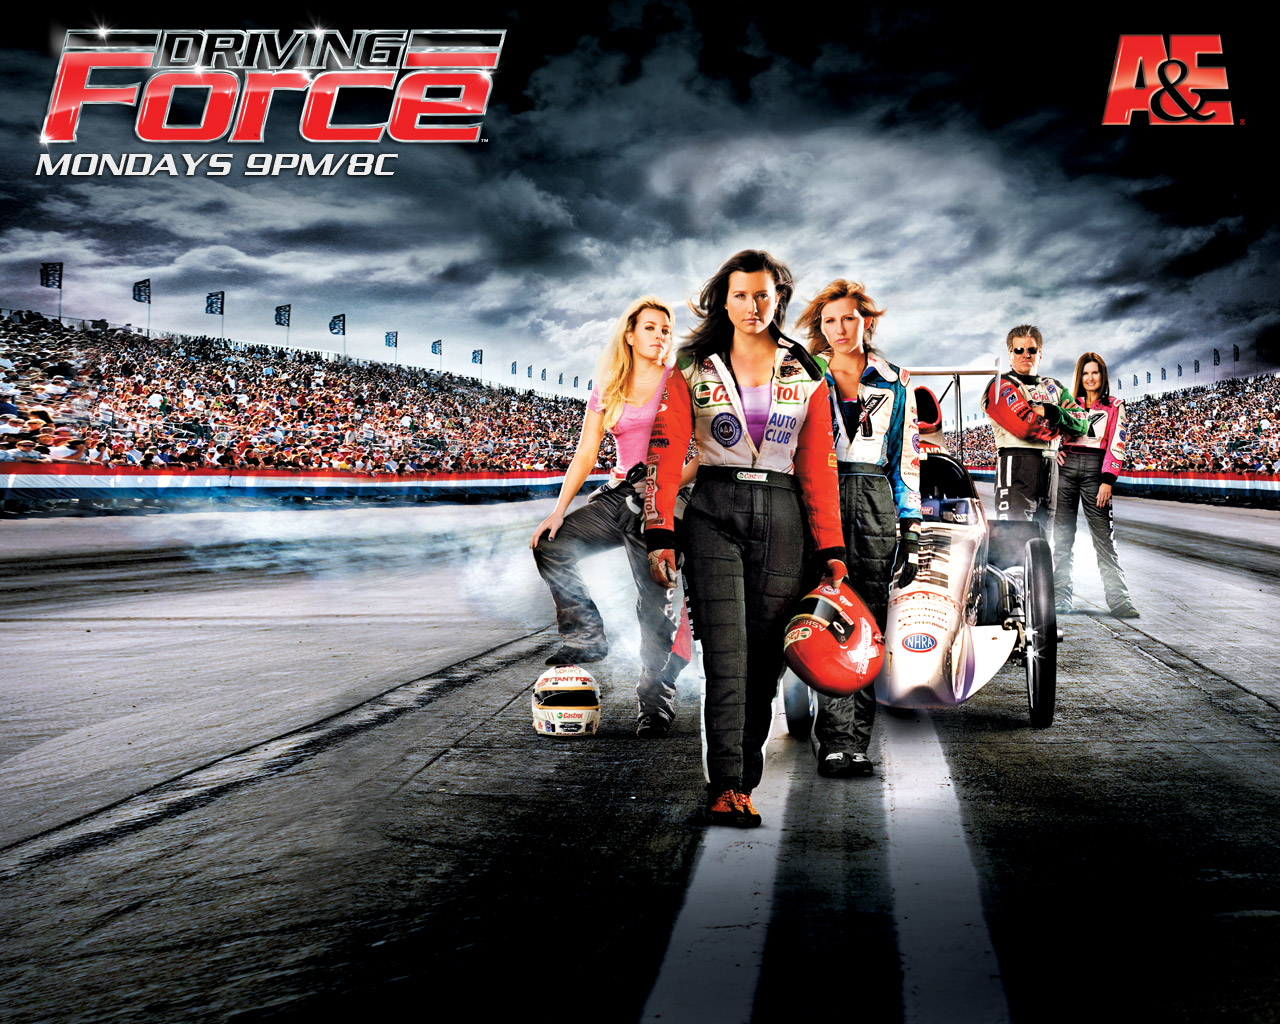 Driving-Force-Wallpaper-driving-force-37436_1280_1024.jpg